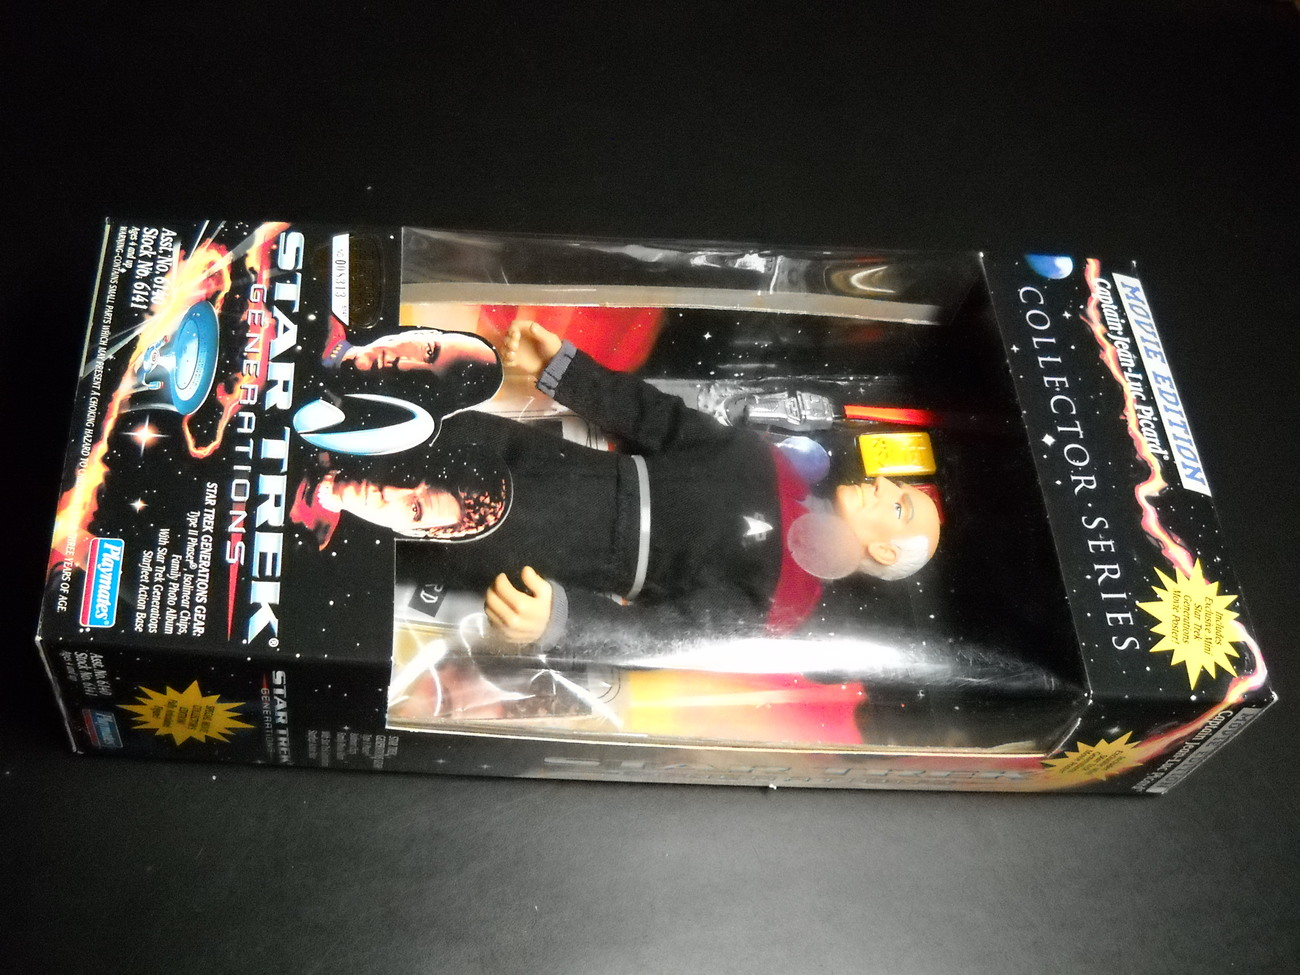 Toy star trek playmates star trek generations movie edition captain jean luc picard 1994 9 inch boxed sealed 01